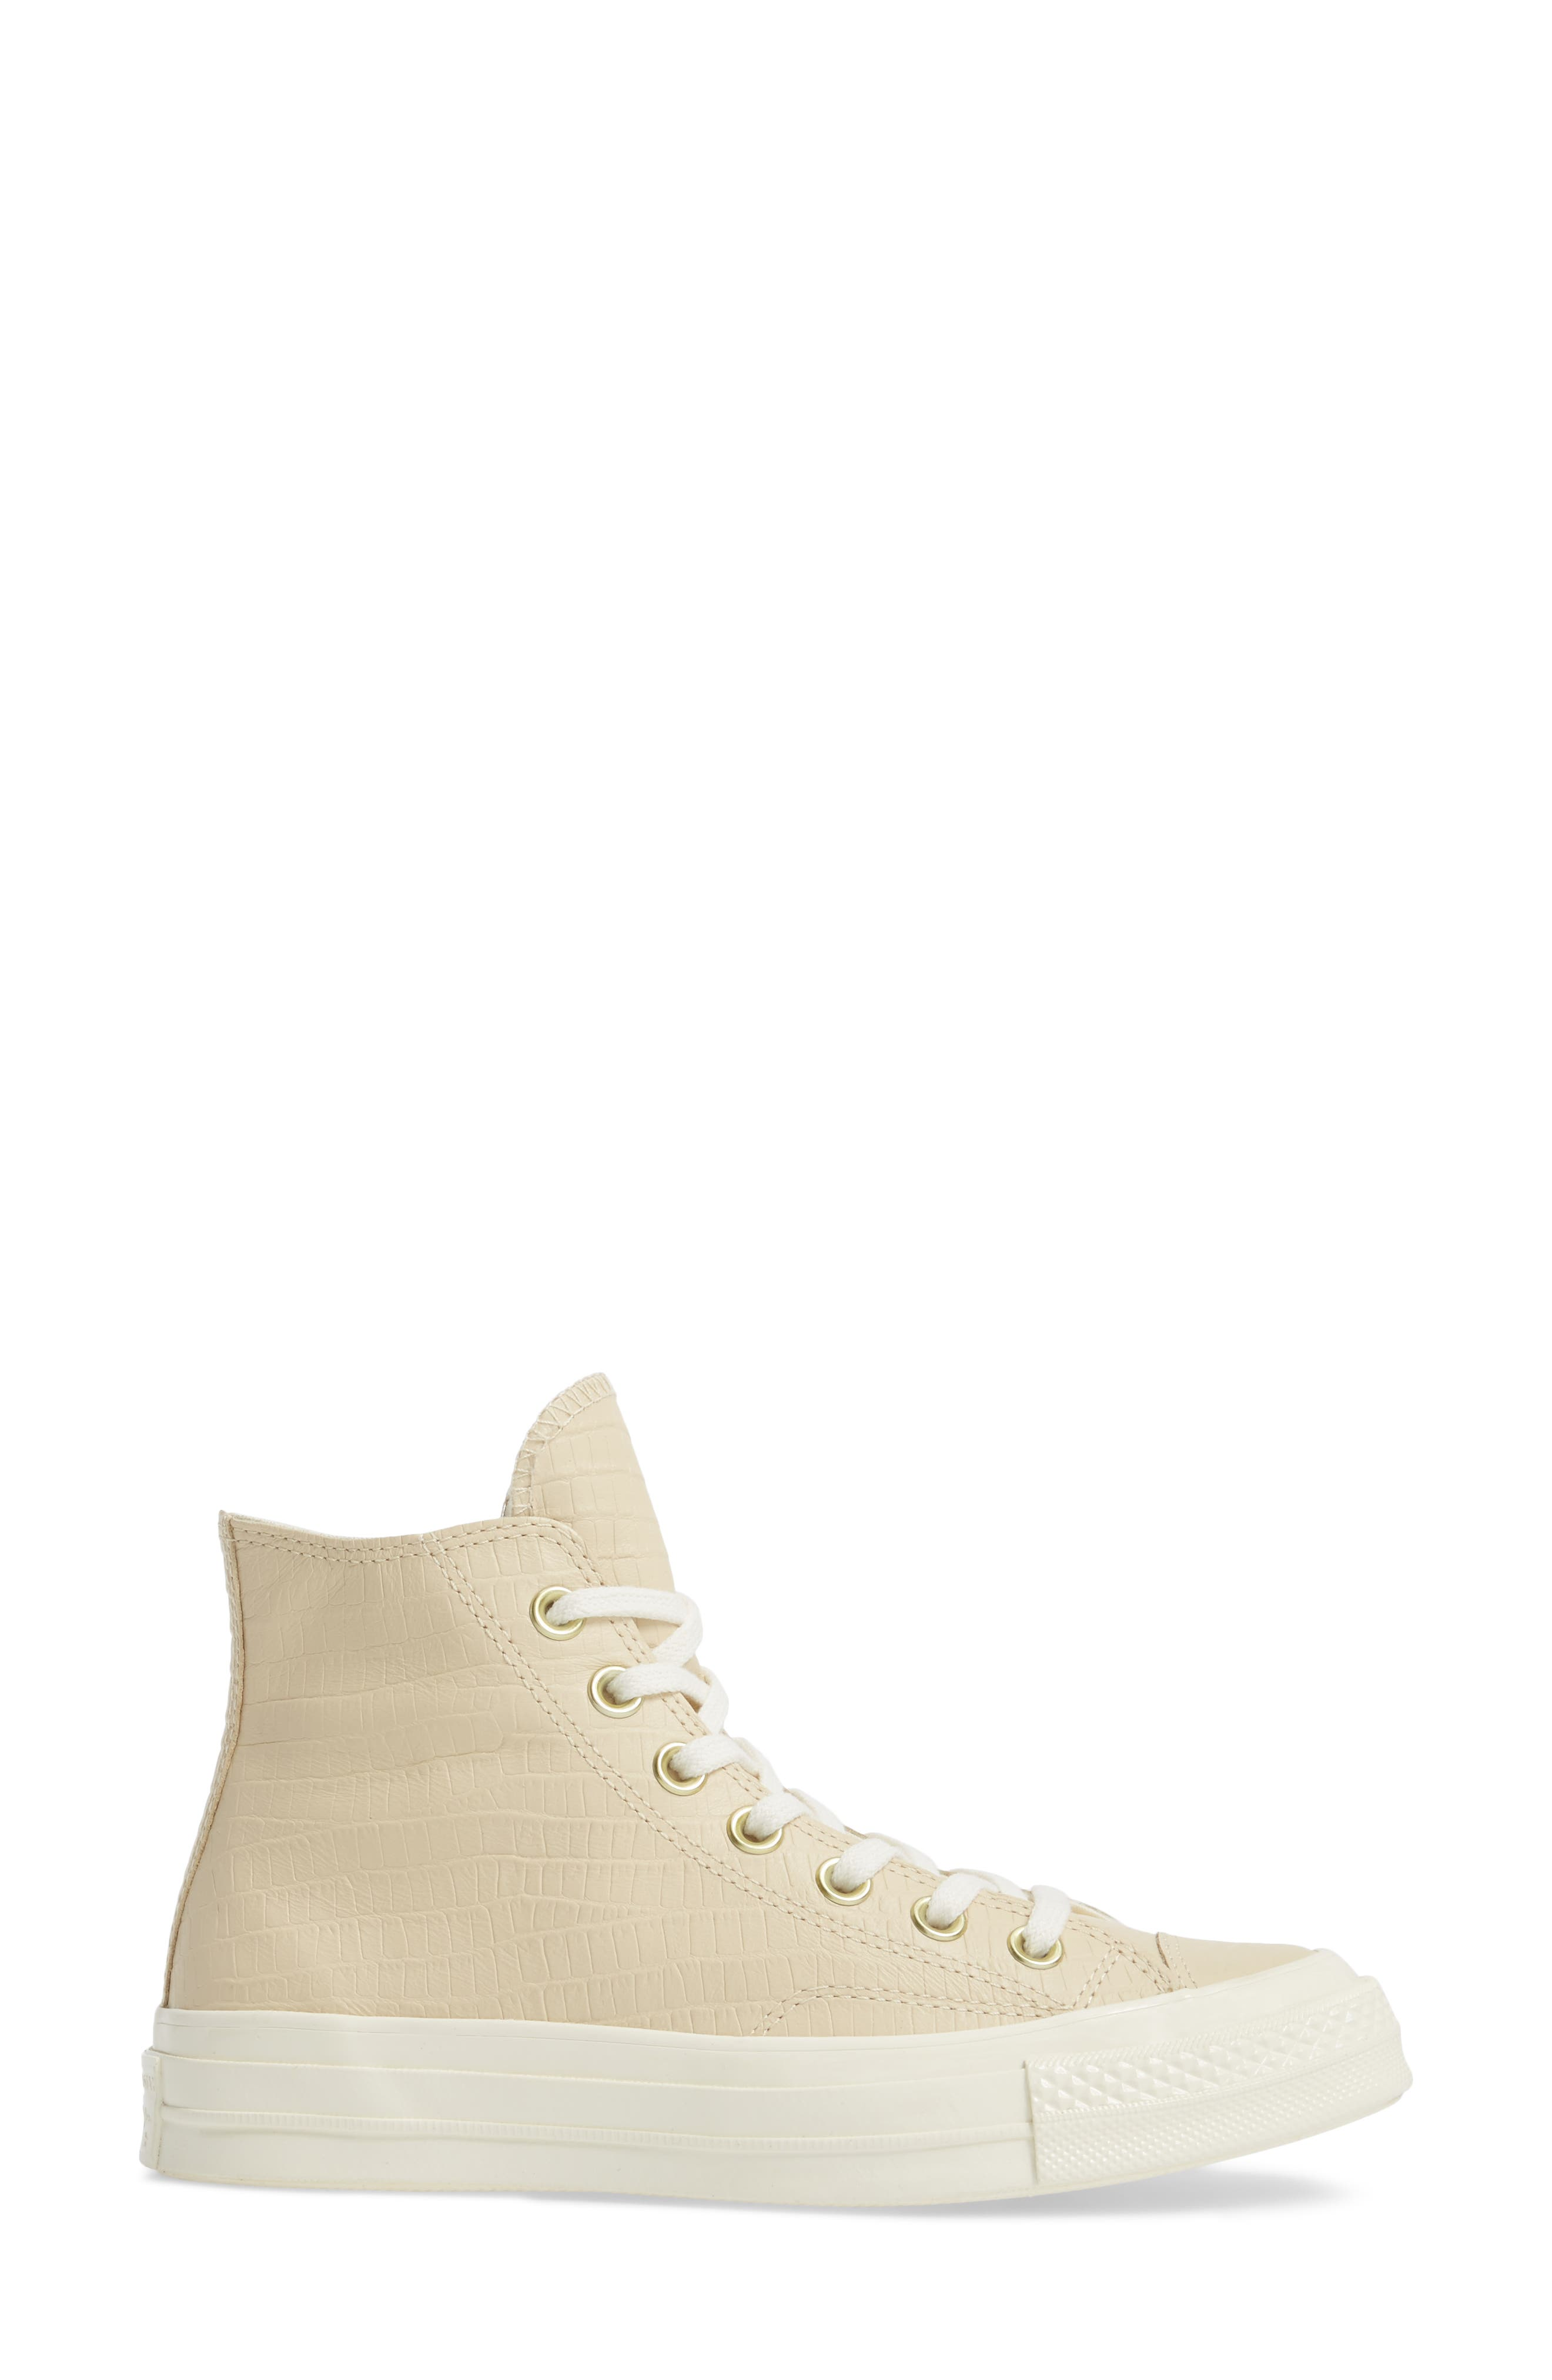 Chuck Taylor<sup>®</sup> All Star<sup>®</sup> CT 70 Reptile High Top Sneaker,                             Alternate thumbnail 3, color,                             250